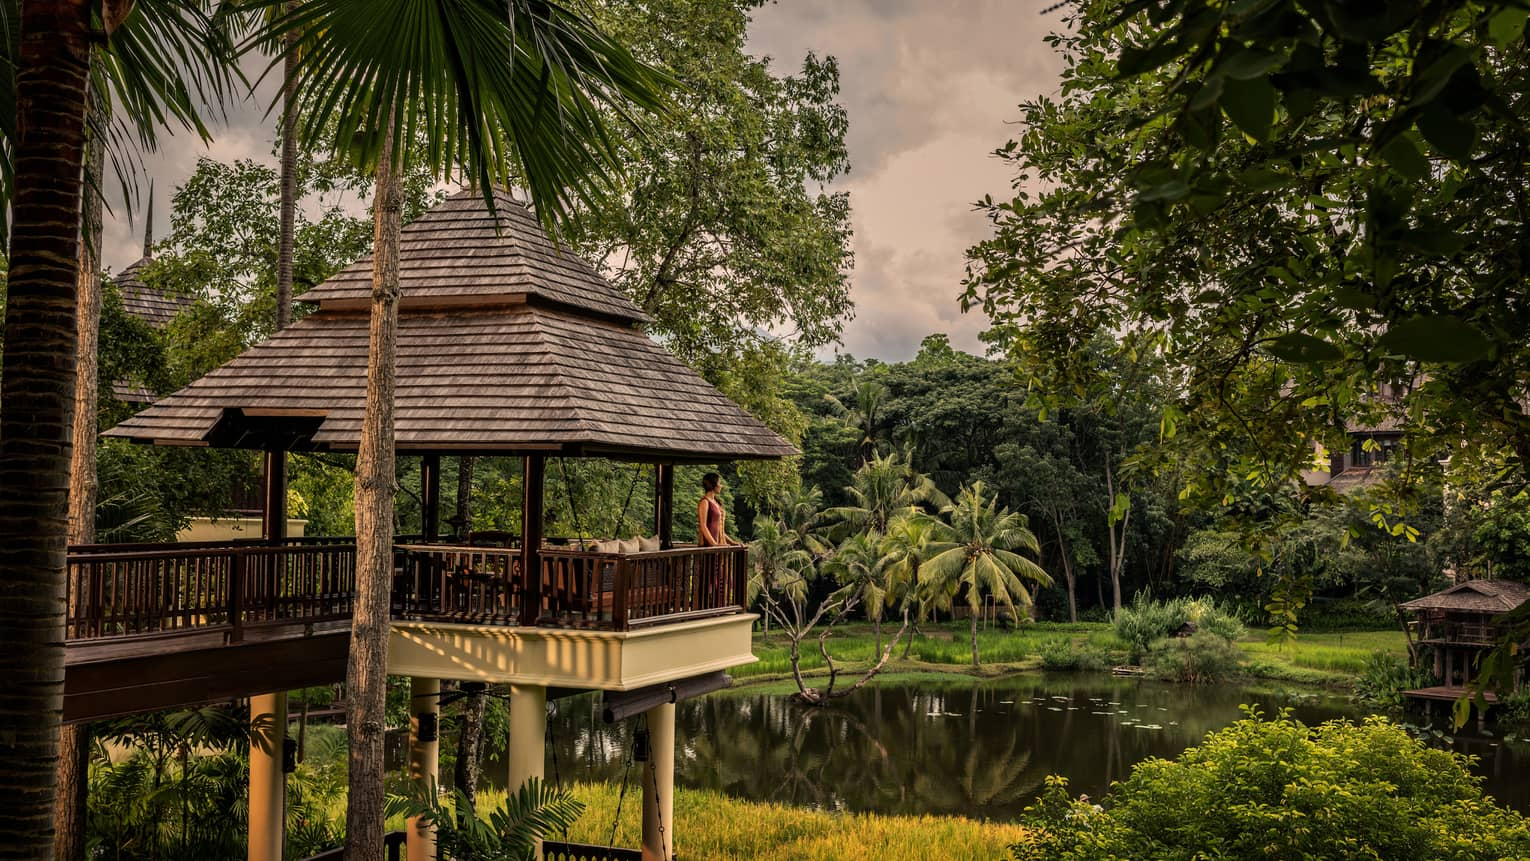 Woman stands at edge of balcony under shingled-roof, overlooking pond and tropical gardens